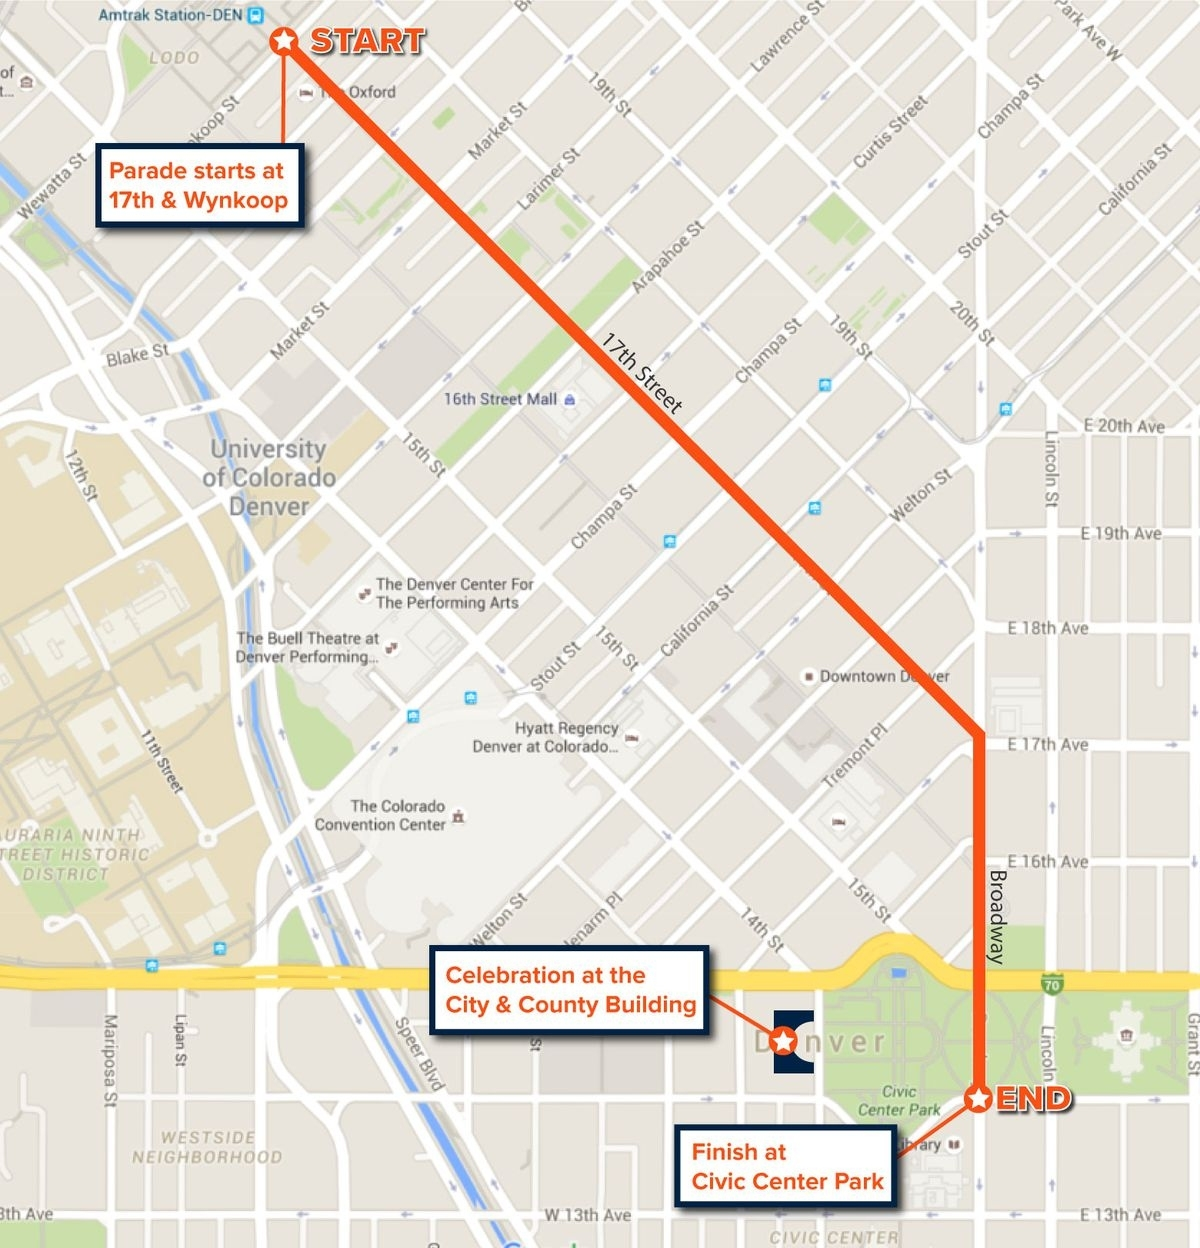 Super Bowl Parade 2016 Map And Route For Denver Broncos with regard to Patriots Super Bowl Parade 2019 Map